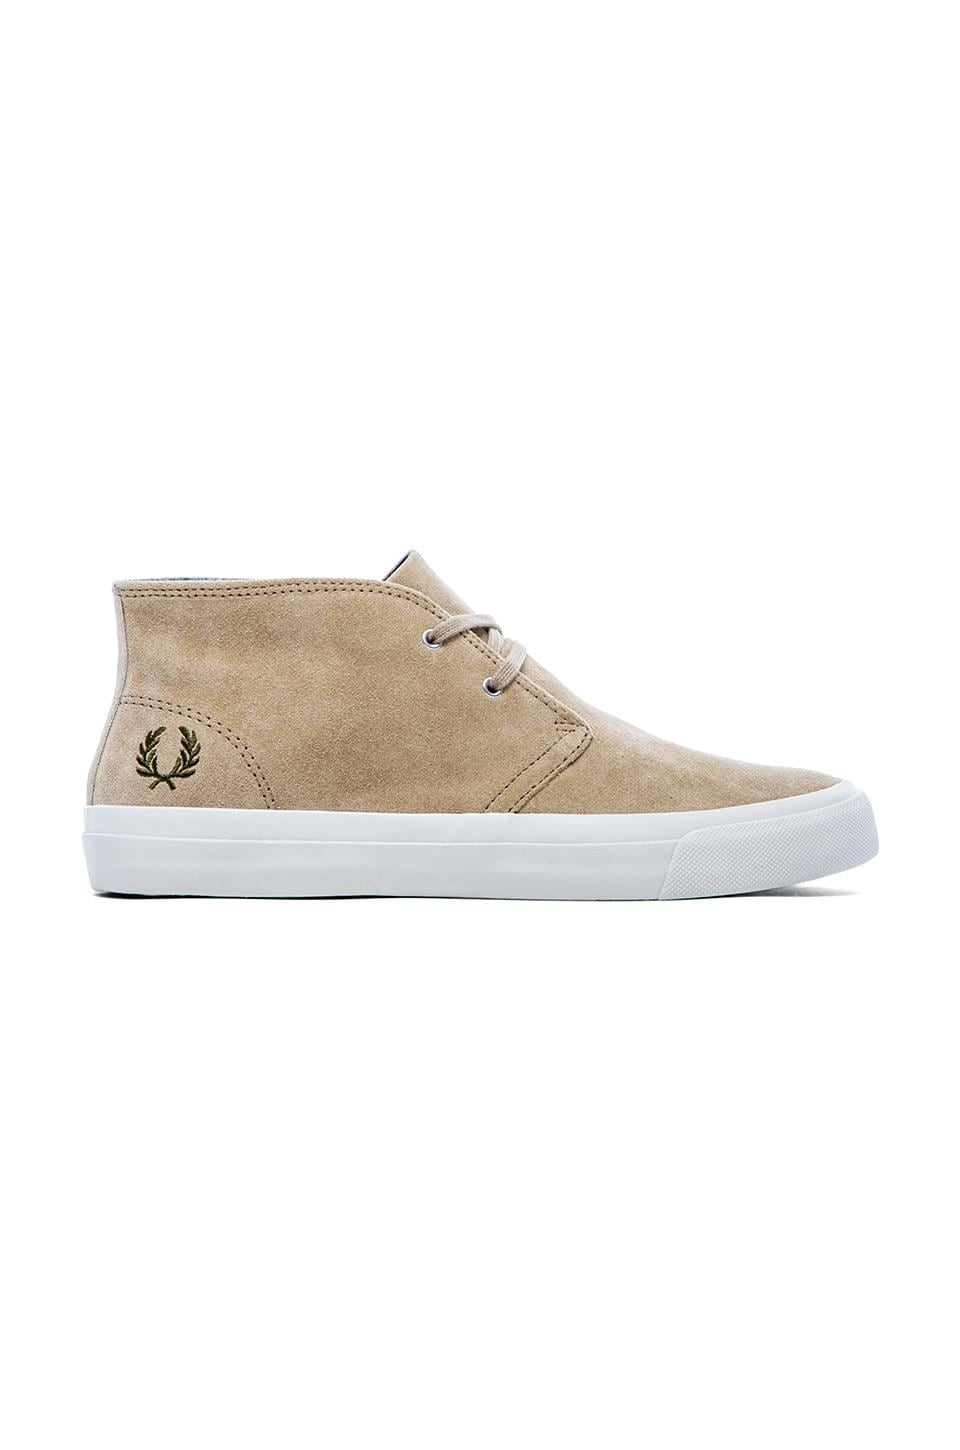 Fred Perry Vernon Mid Sneaker in Warm Stone & British Olive